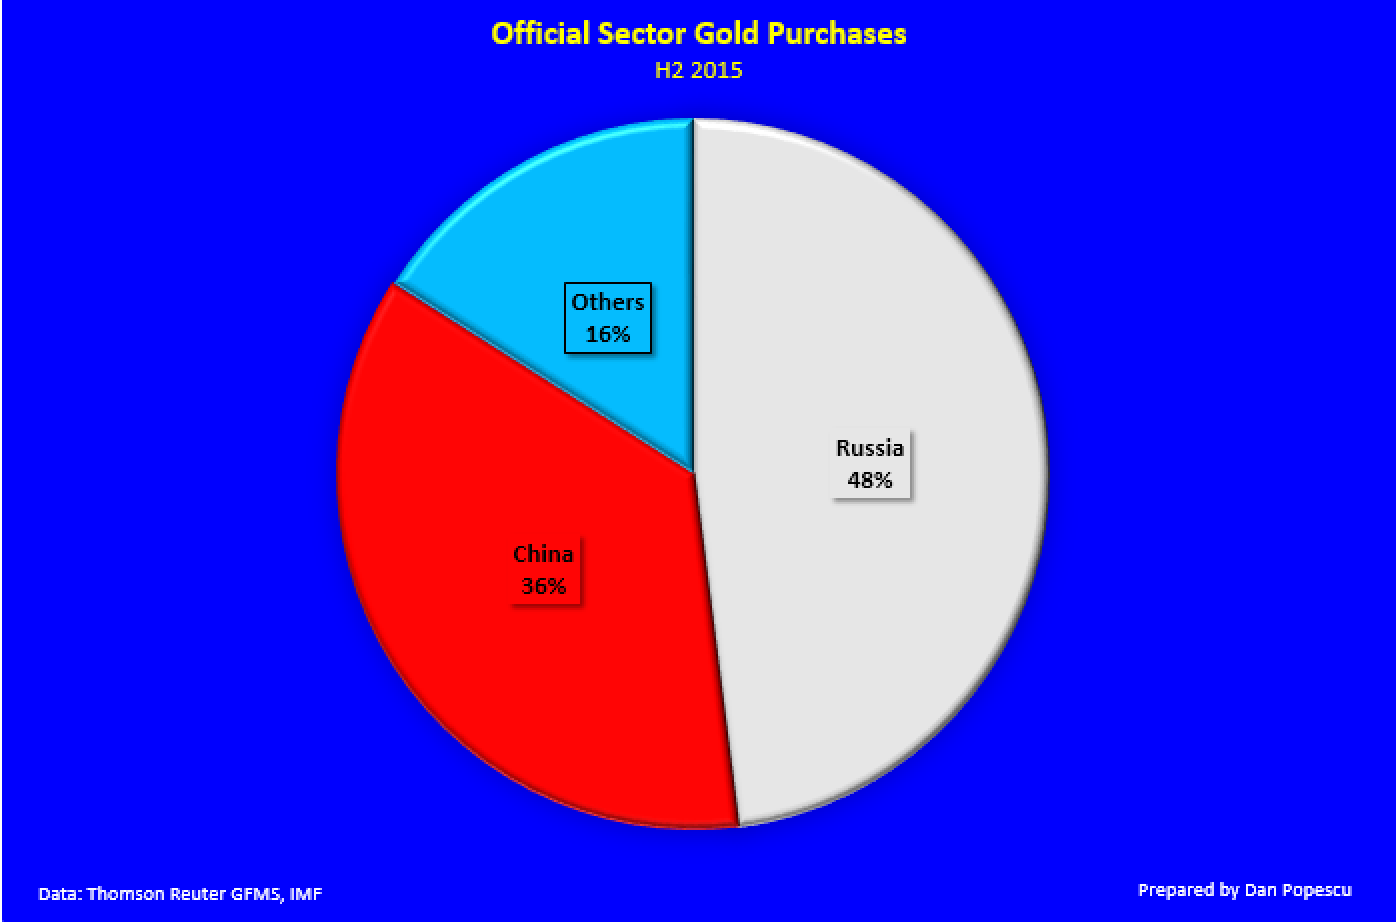 Official Sector Gold Purchases